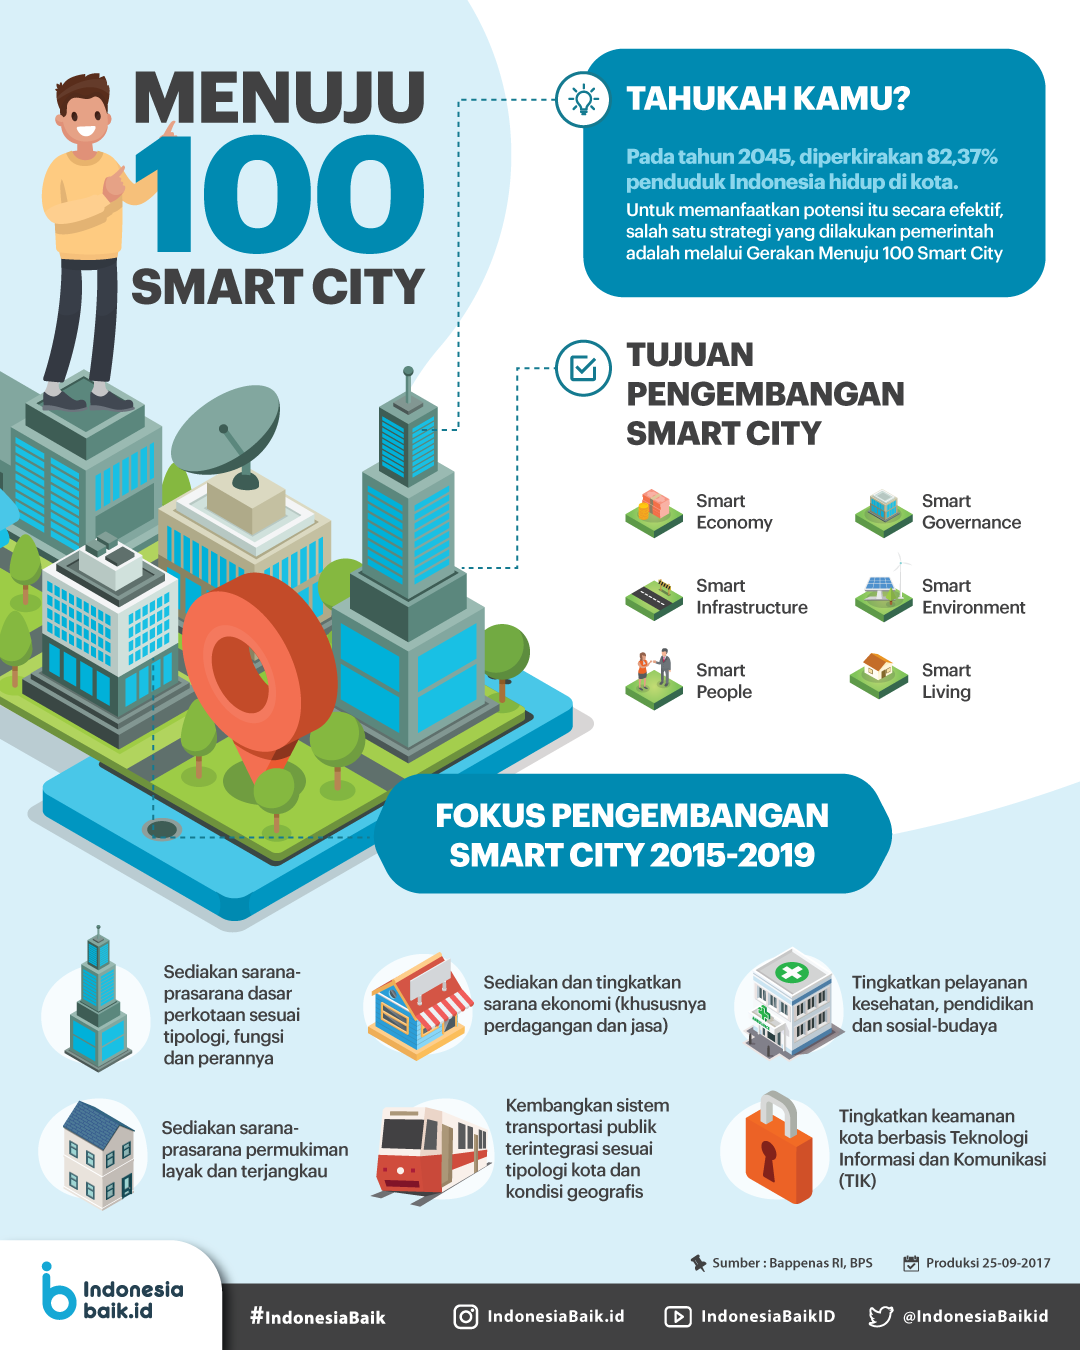 Menuju 100 Smart City